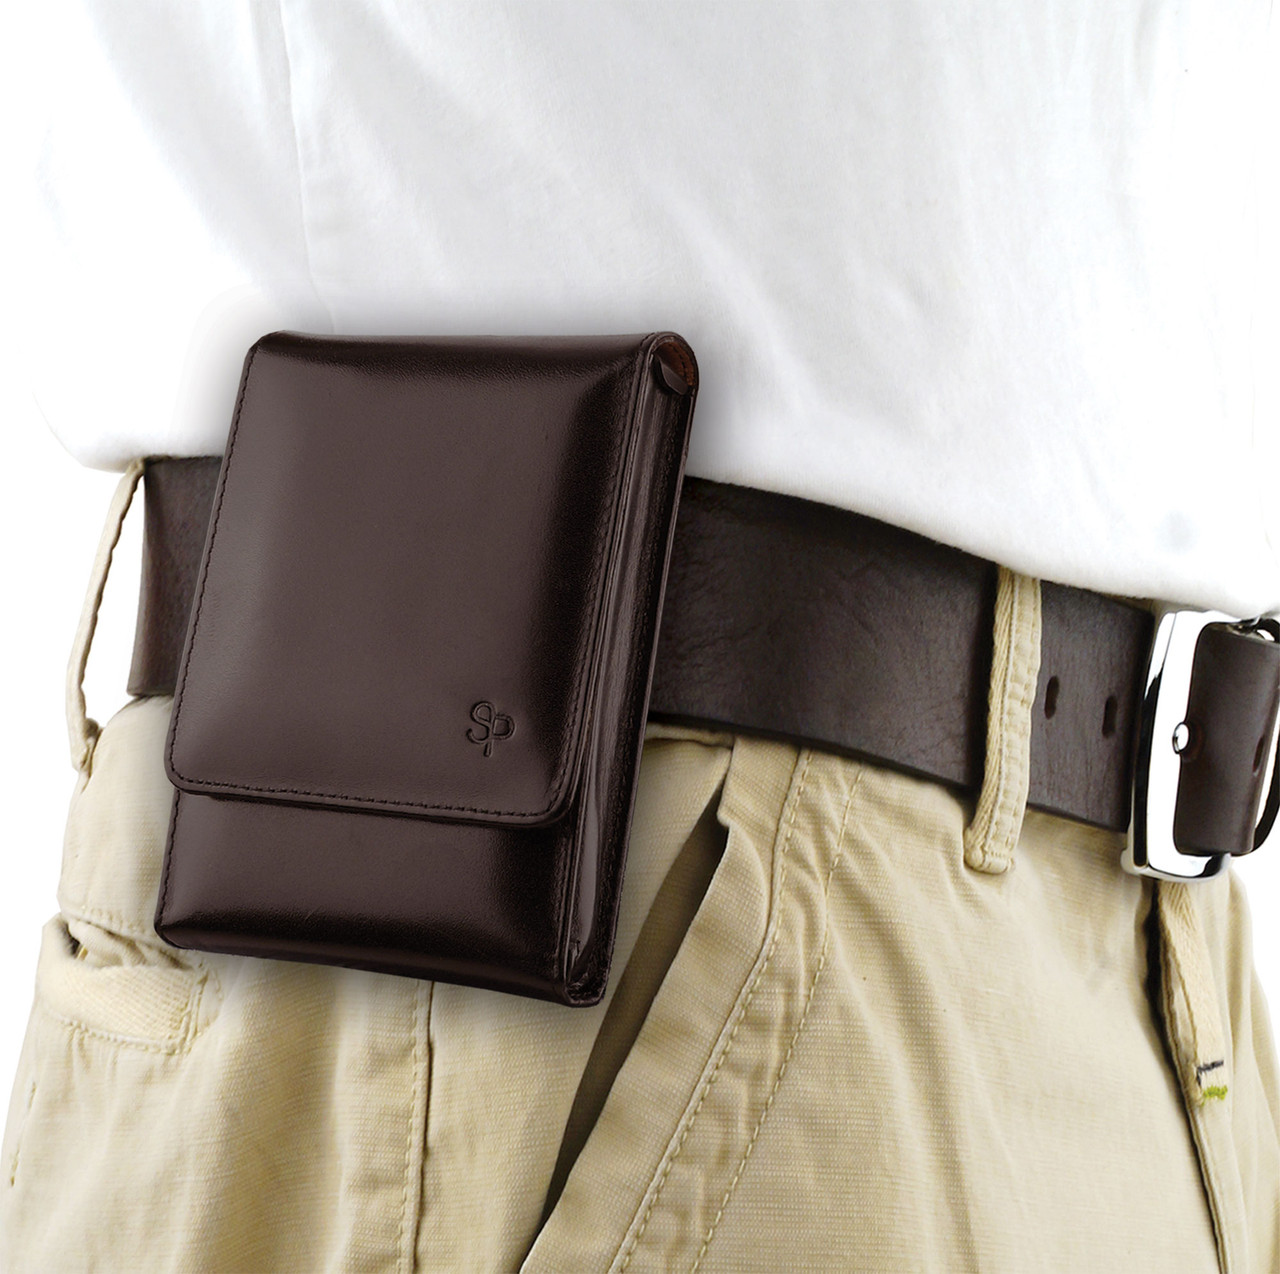 Walther PPK Brown Leather Series Holster